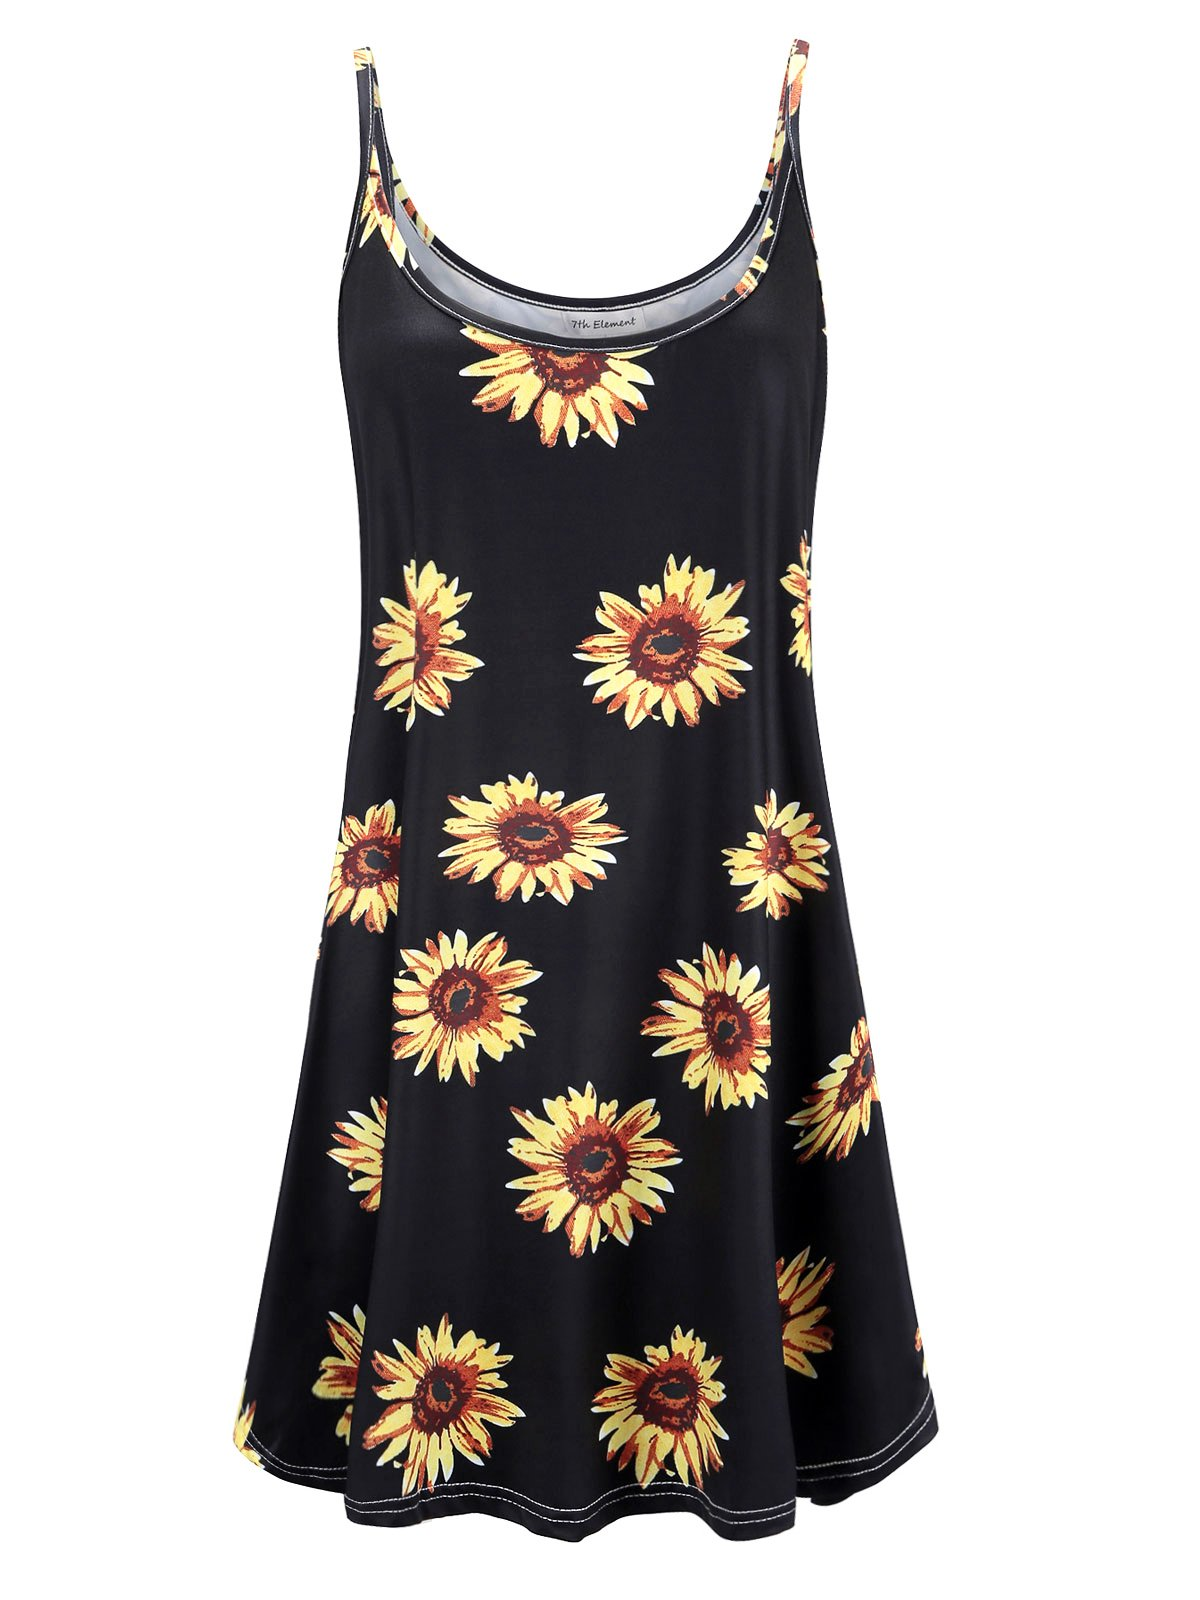 7th Element Women's Plus Size Spaghetti Strap Tank Cami Floral Dress (Black Sun Flower,5X) by 7th Element